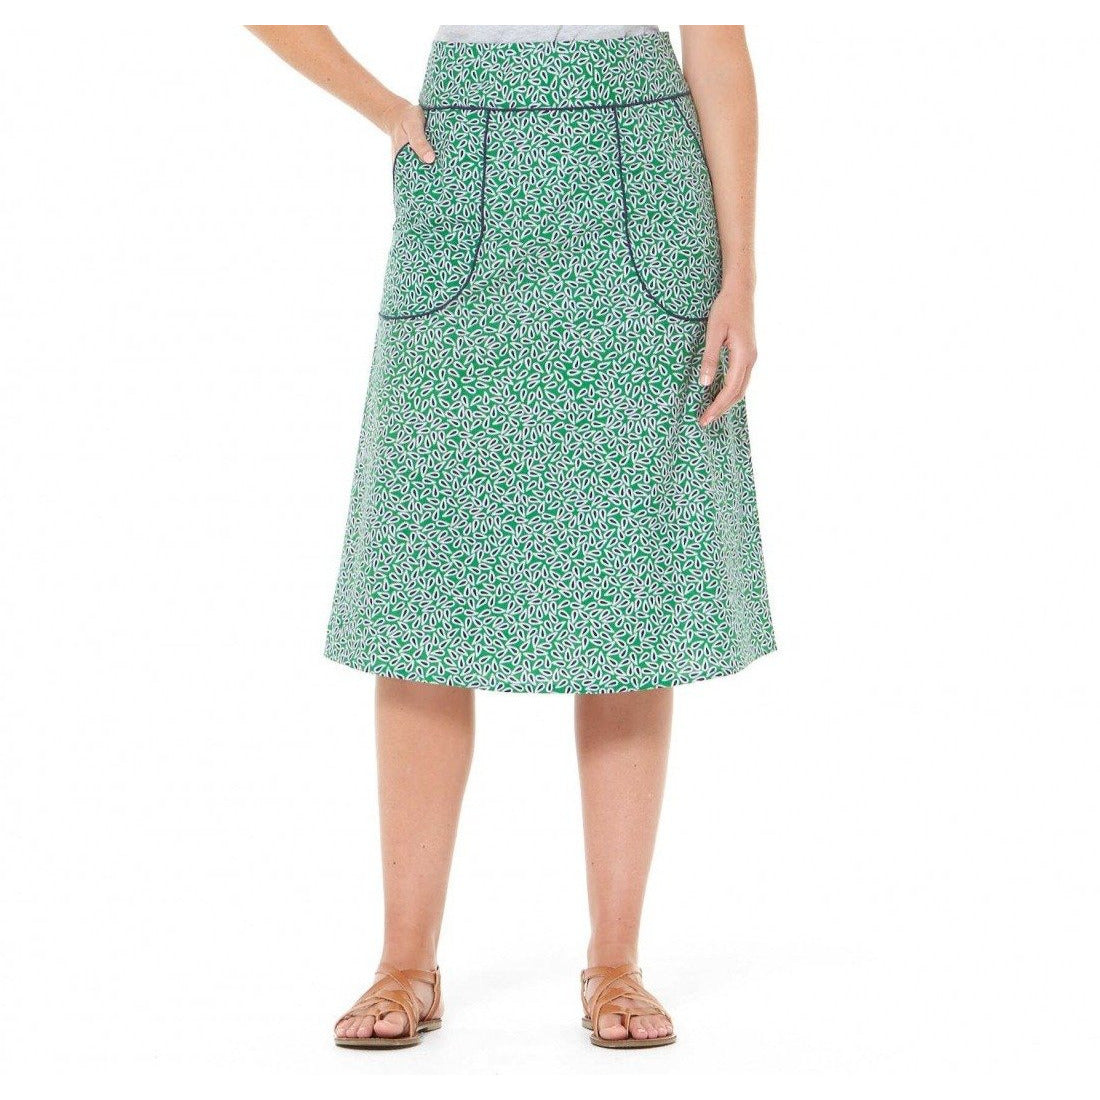 Rasaleela Melitta A-Line Cotton skirt in Lisbon Print